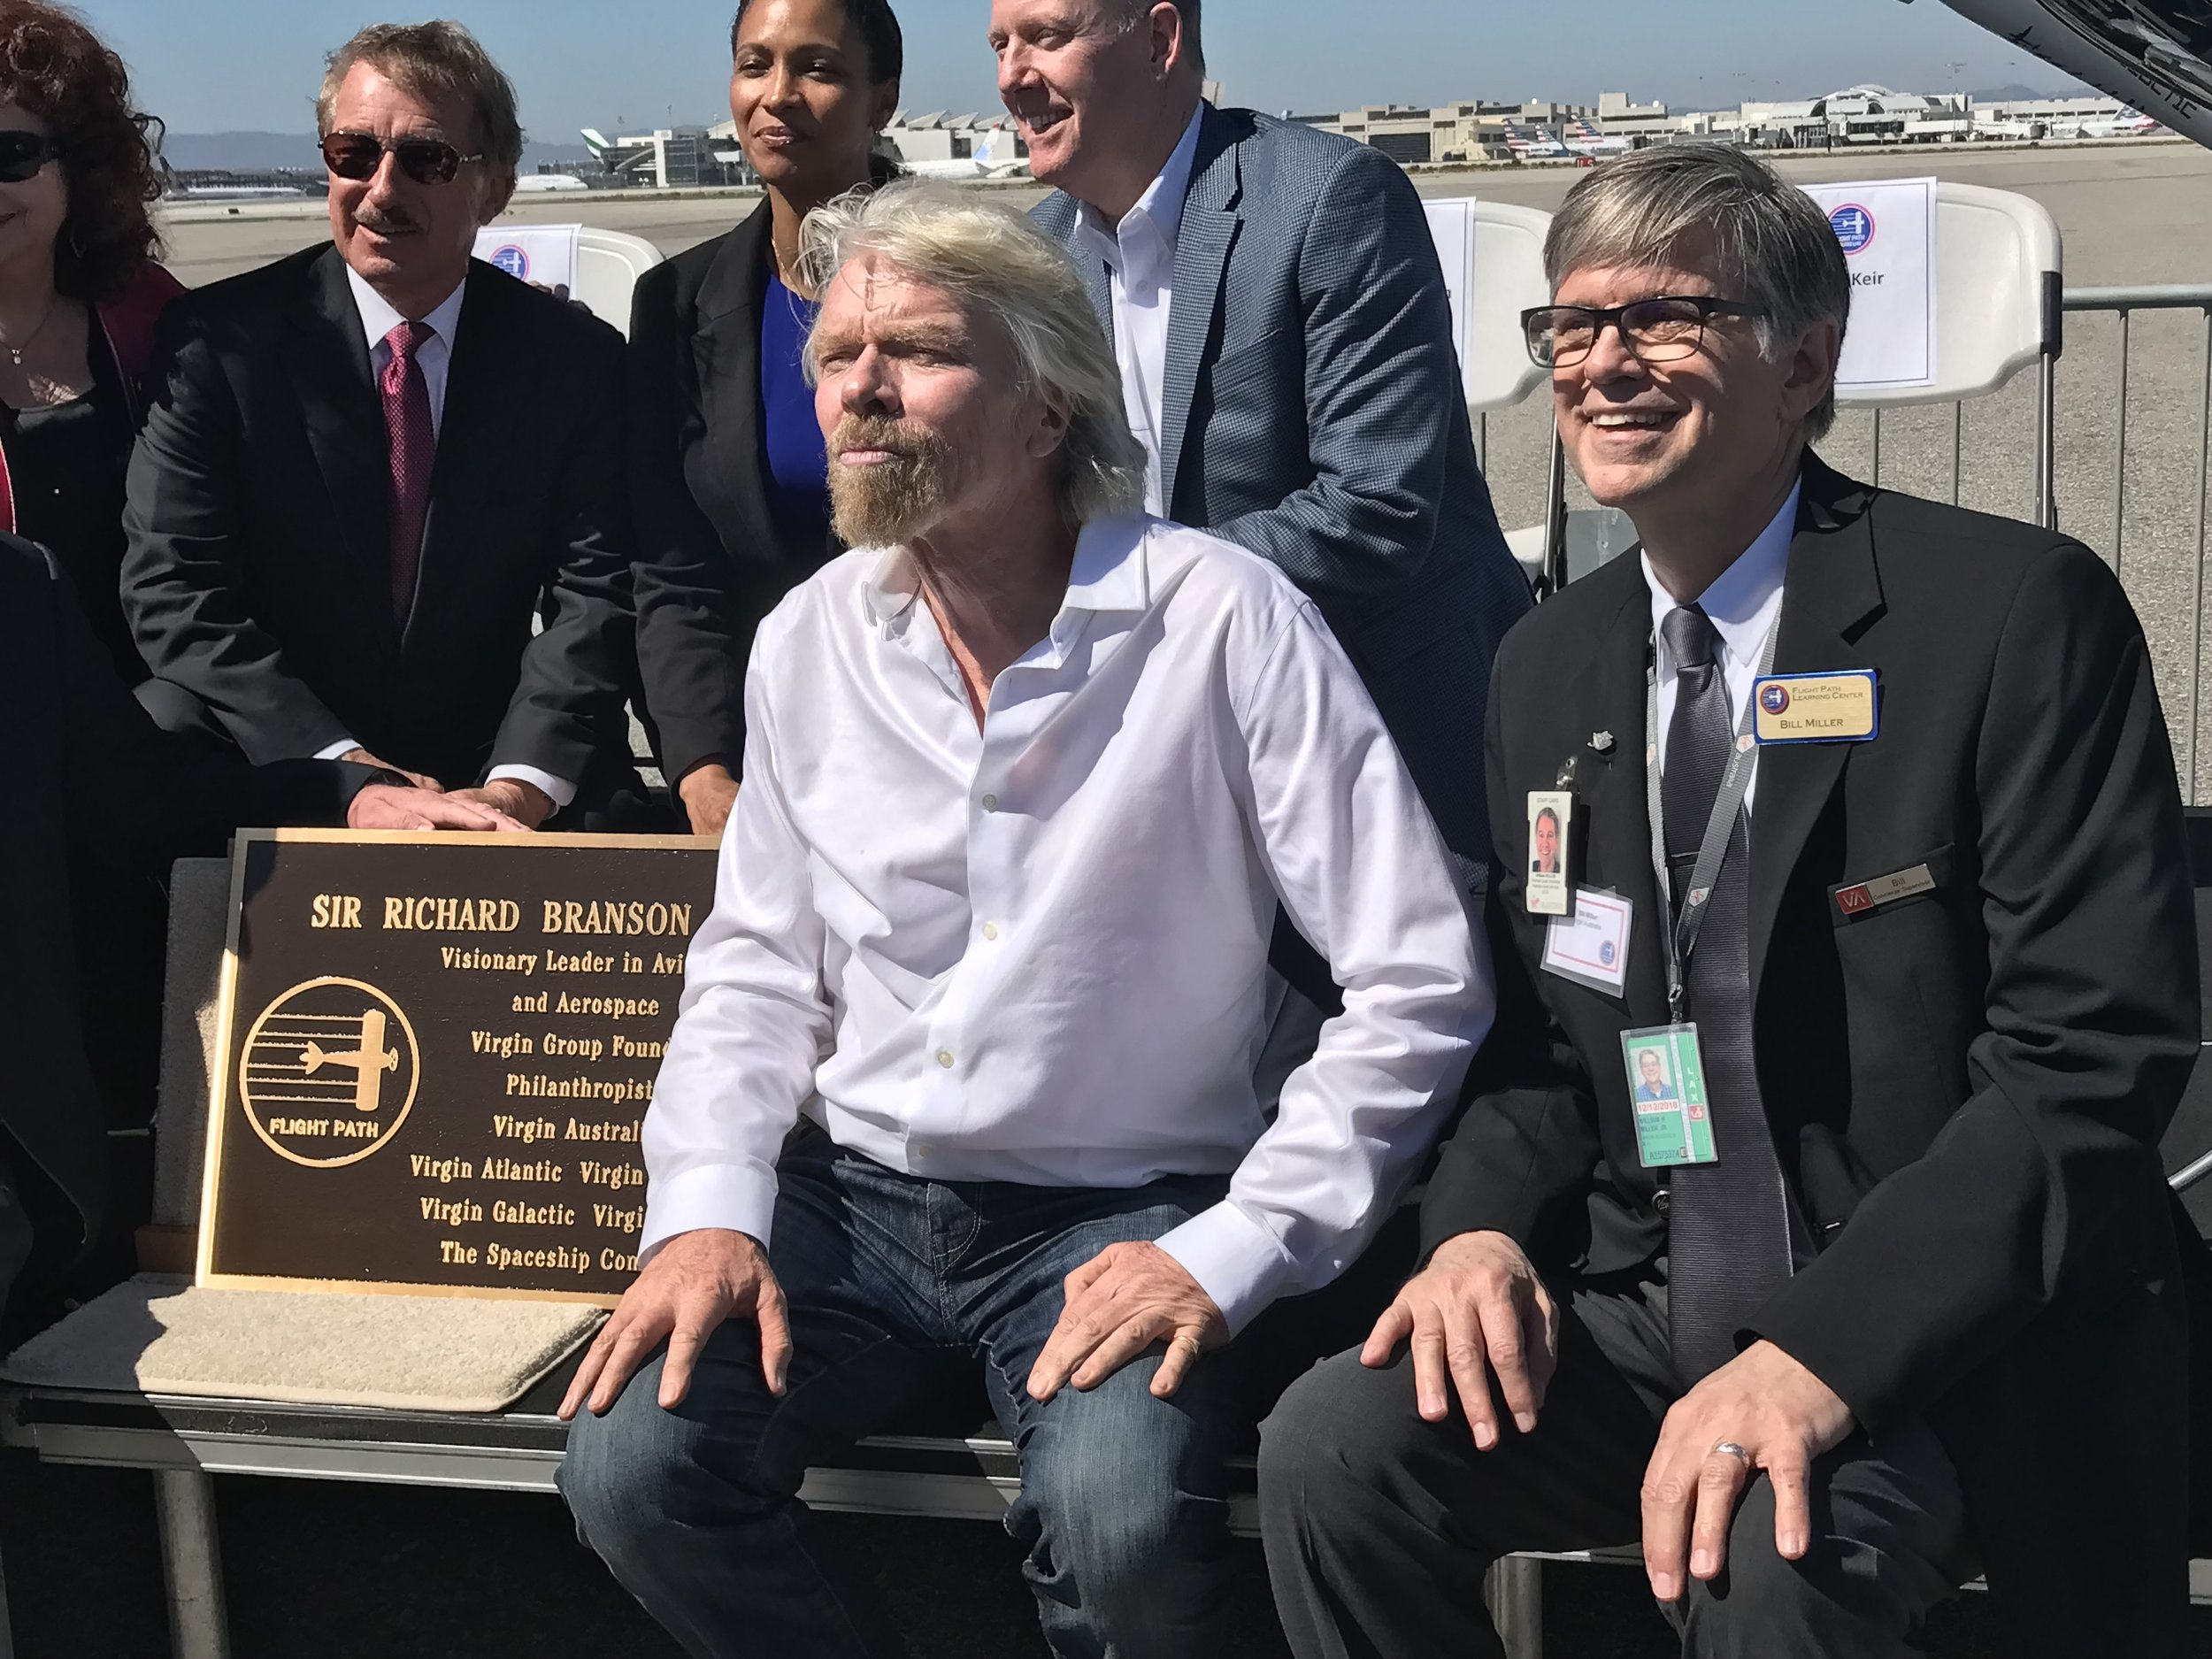 Sir Richard Branson being honored at the Flight Path Museum @ LAX (with our friend Bill Miller (on the right) Photos © McCartney Multimedia.